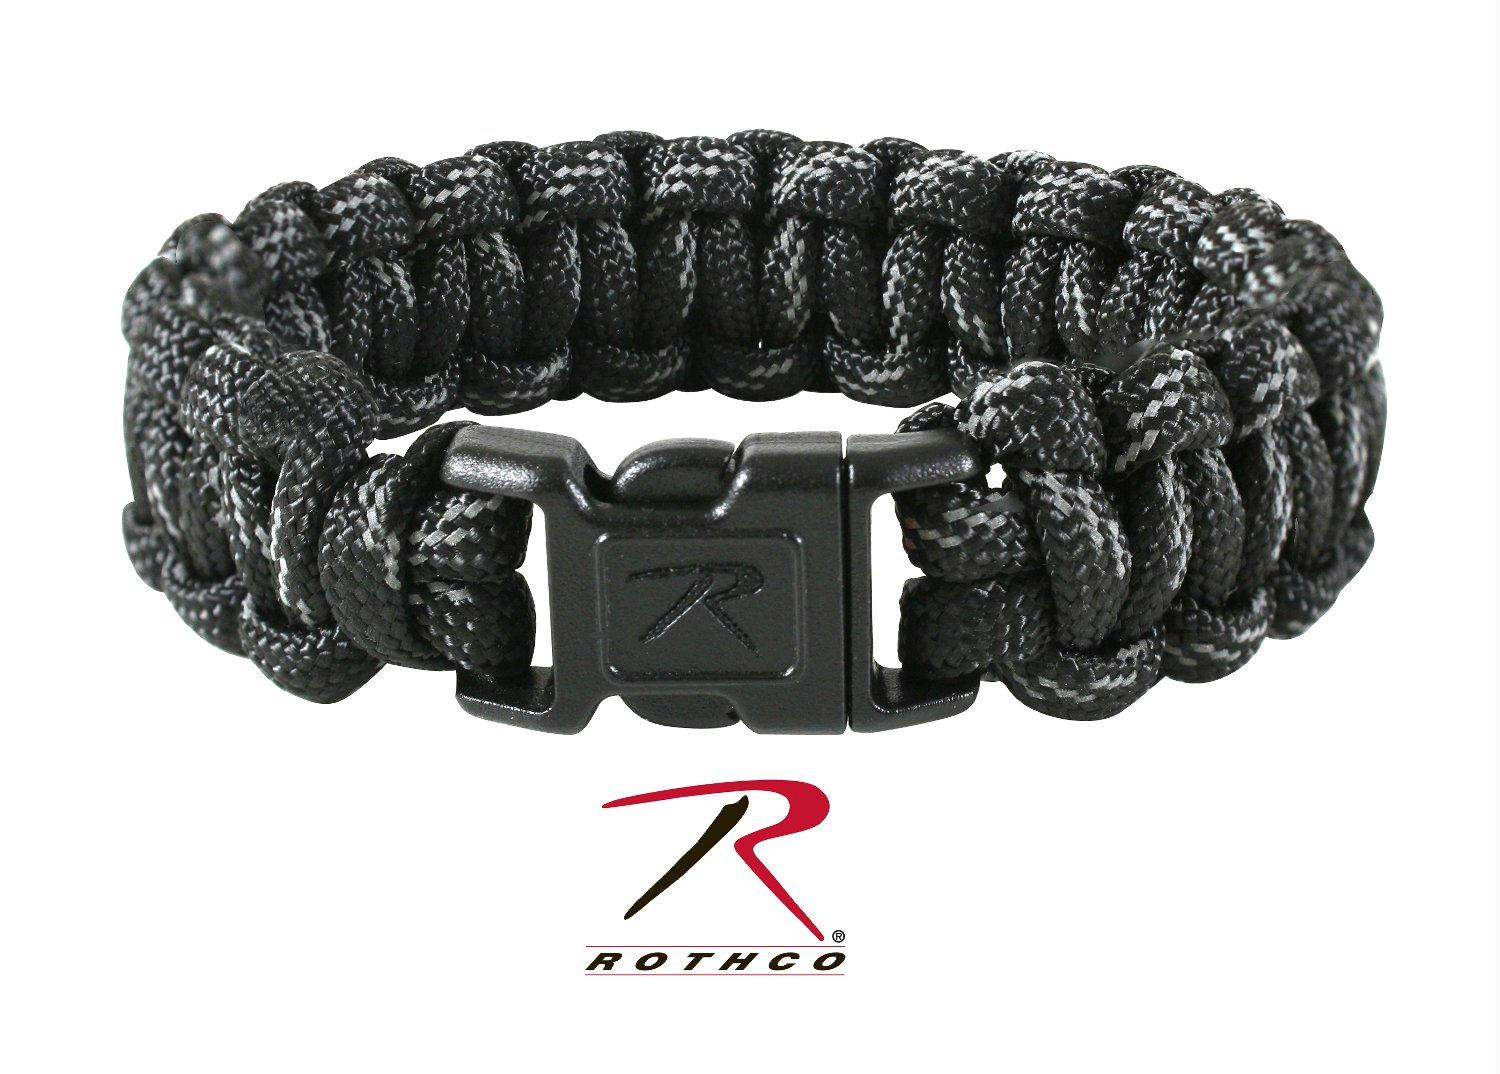 Rothco Black w/ Reflective Paracord Bracelet - 9 Inches